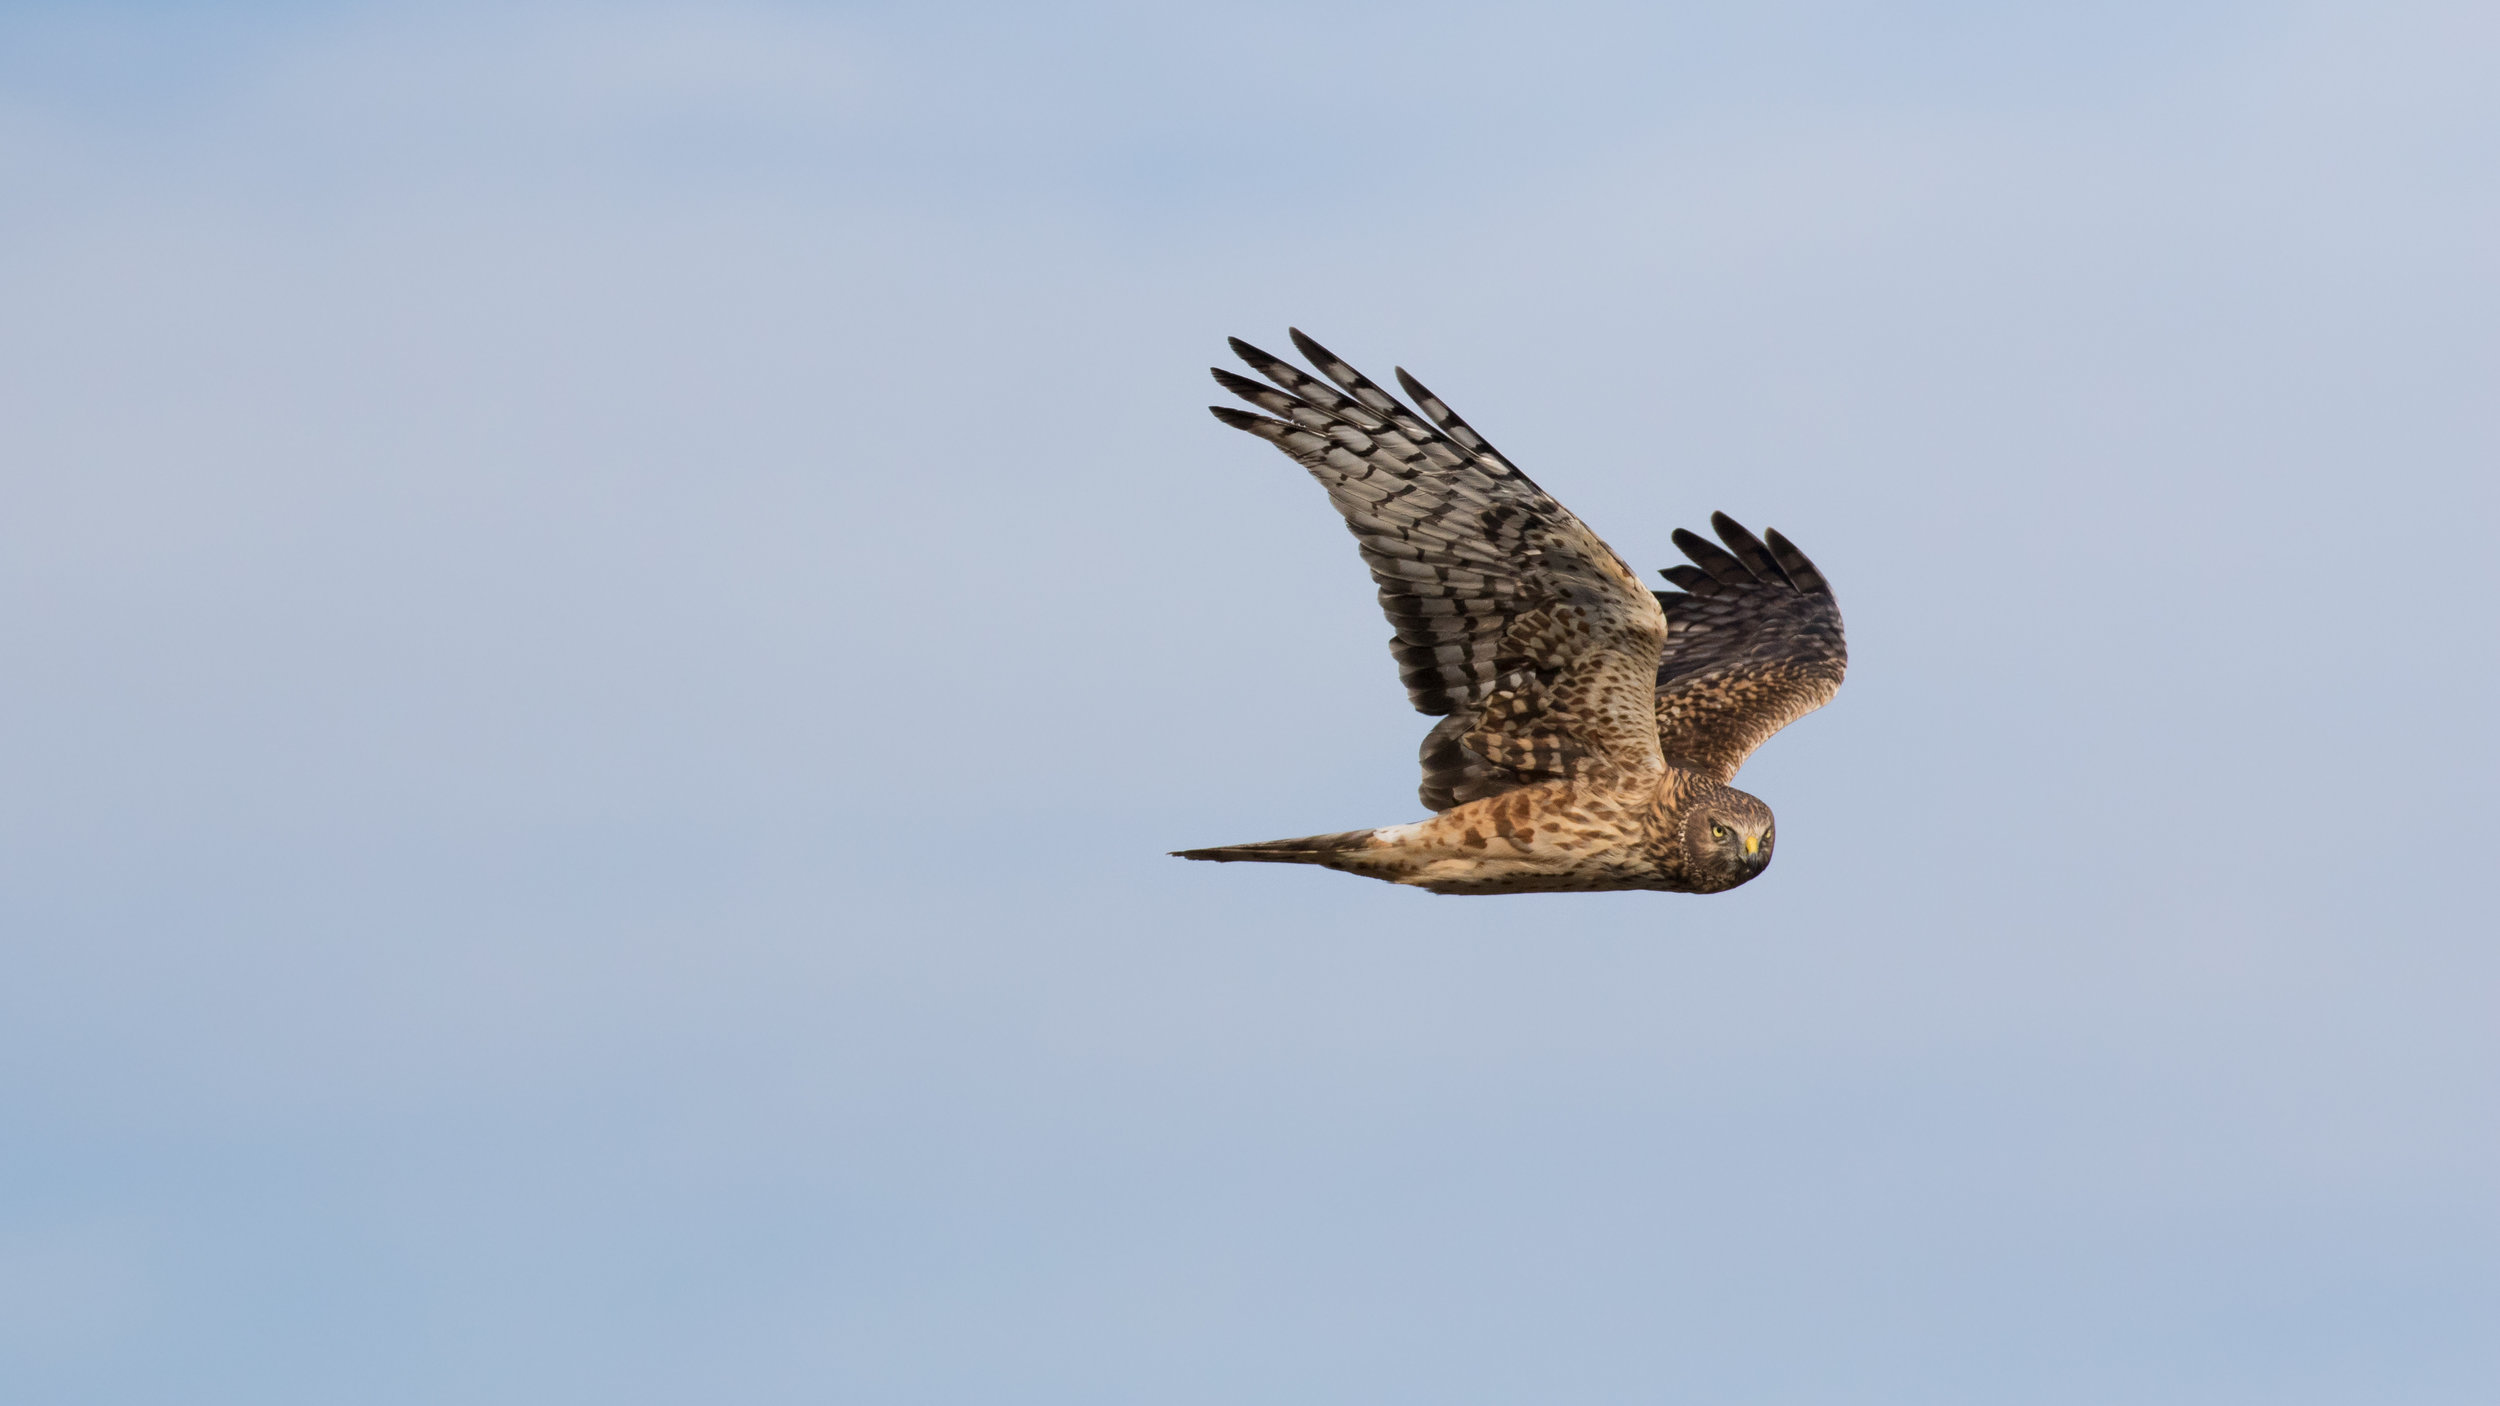 Northern Harrier (Circus hudsonius) at Bolsa Chica Ecological Reserve, Orange County, California. December 2015. Not baited. Not called in.